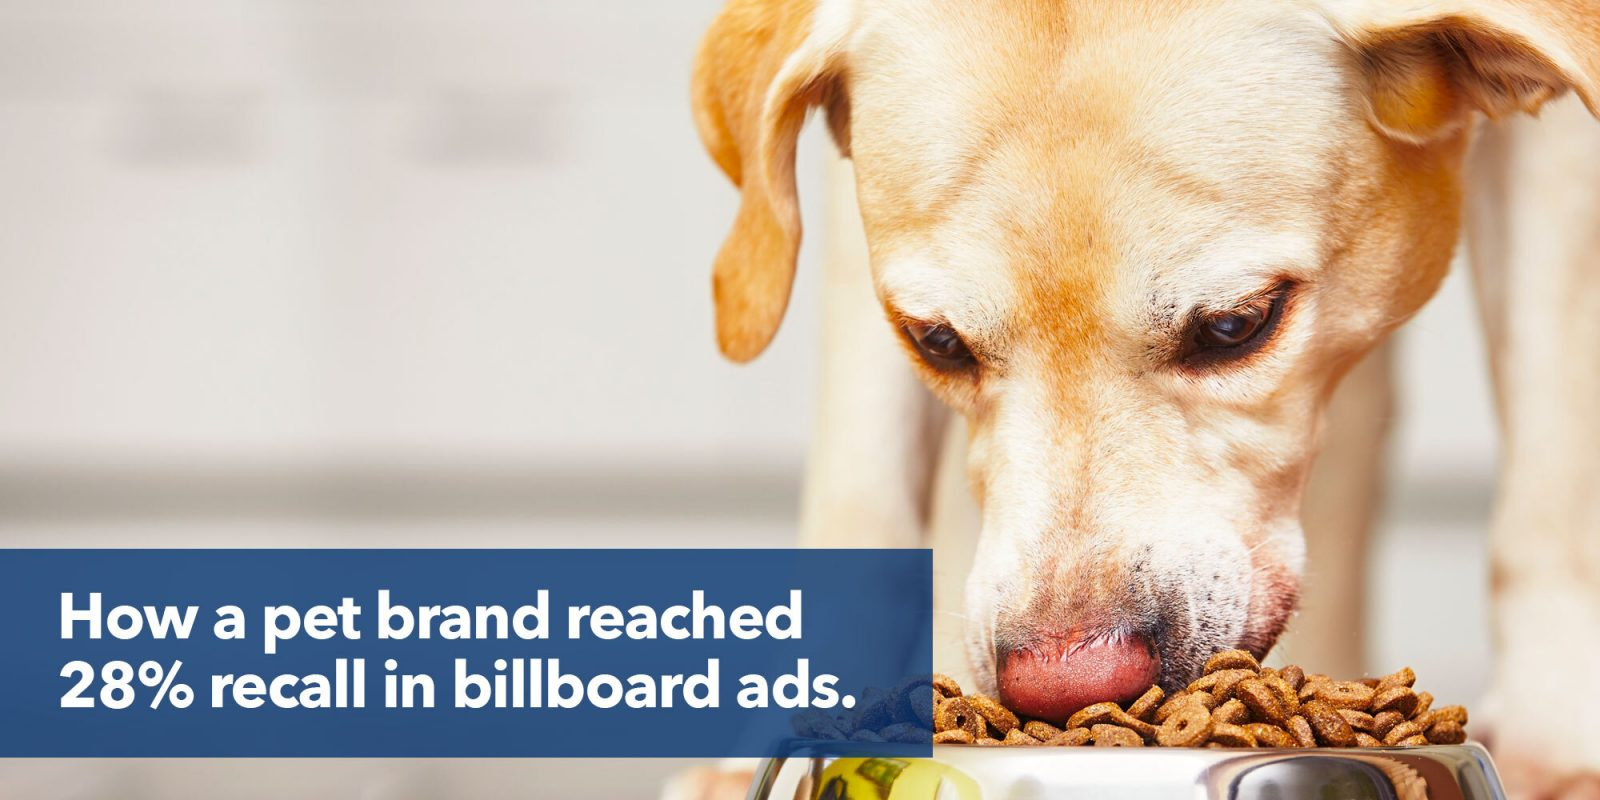 Doggy billboard gets 28% recall.